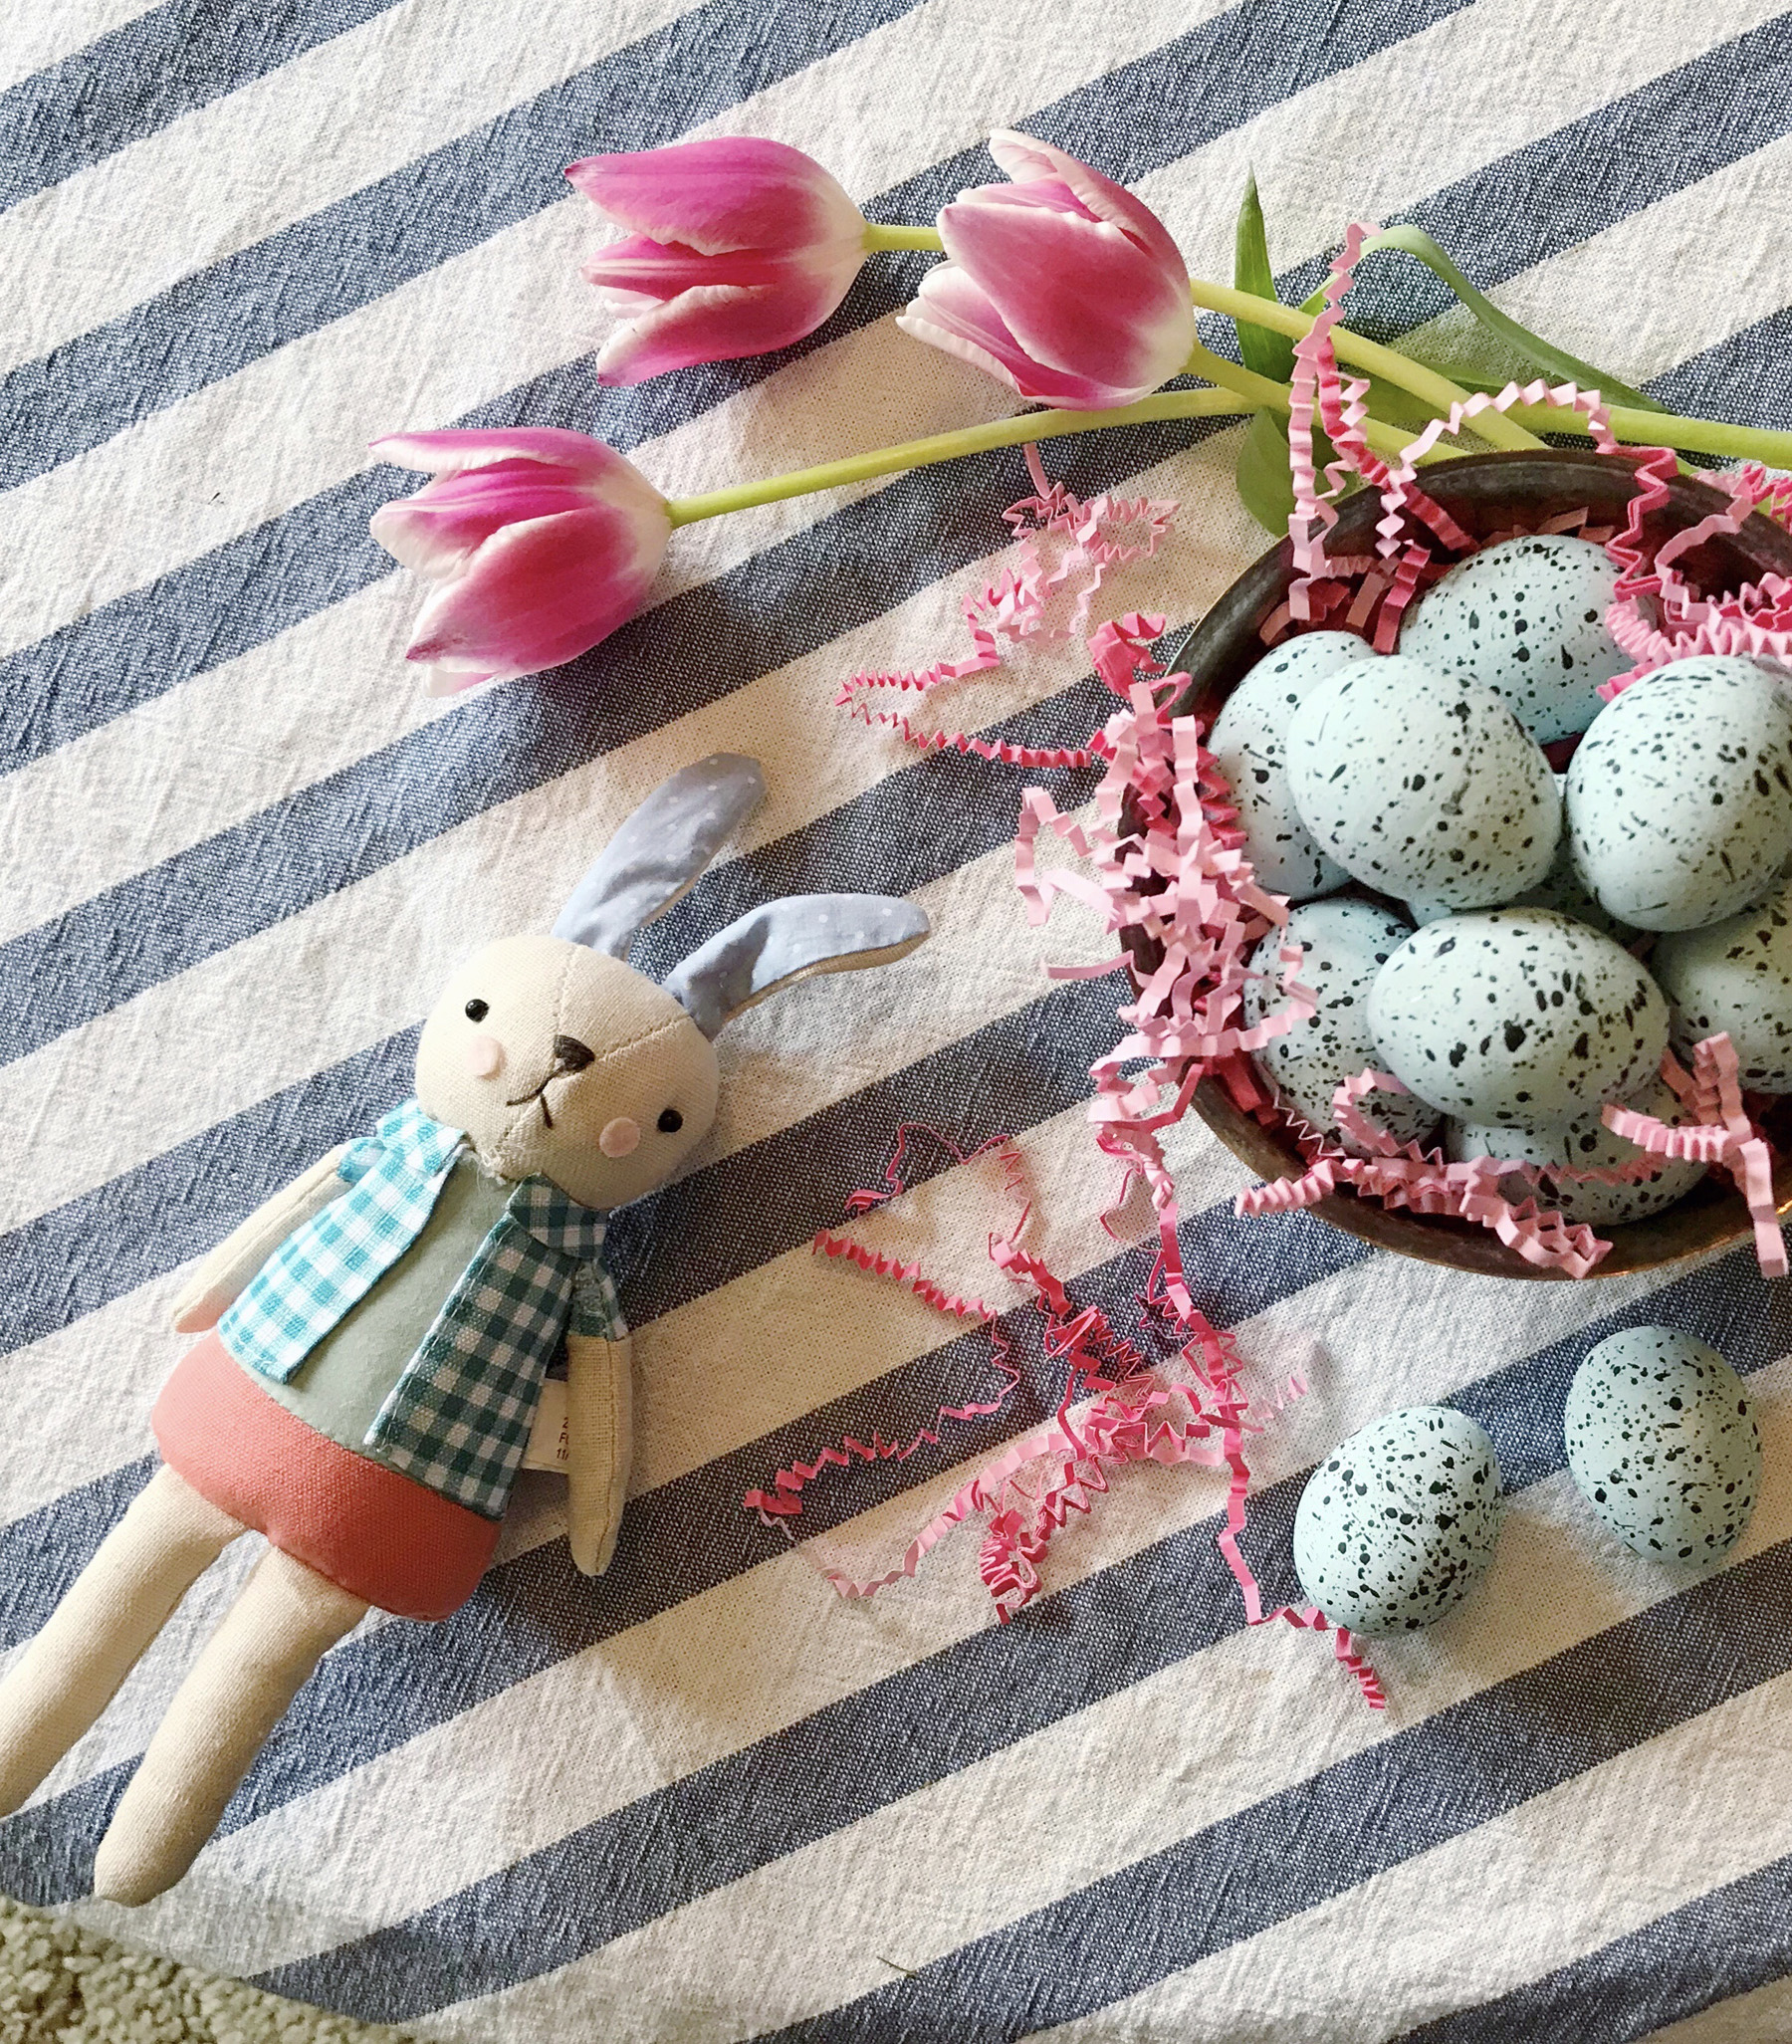 Easter entertaining ideas domestikatedlife dessert and brunch recipes easy diy projects hostess gift ideas and inspiration for your easter dinner table below hope you get the creative juices negle Choice Image